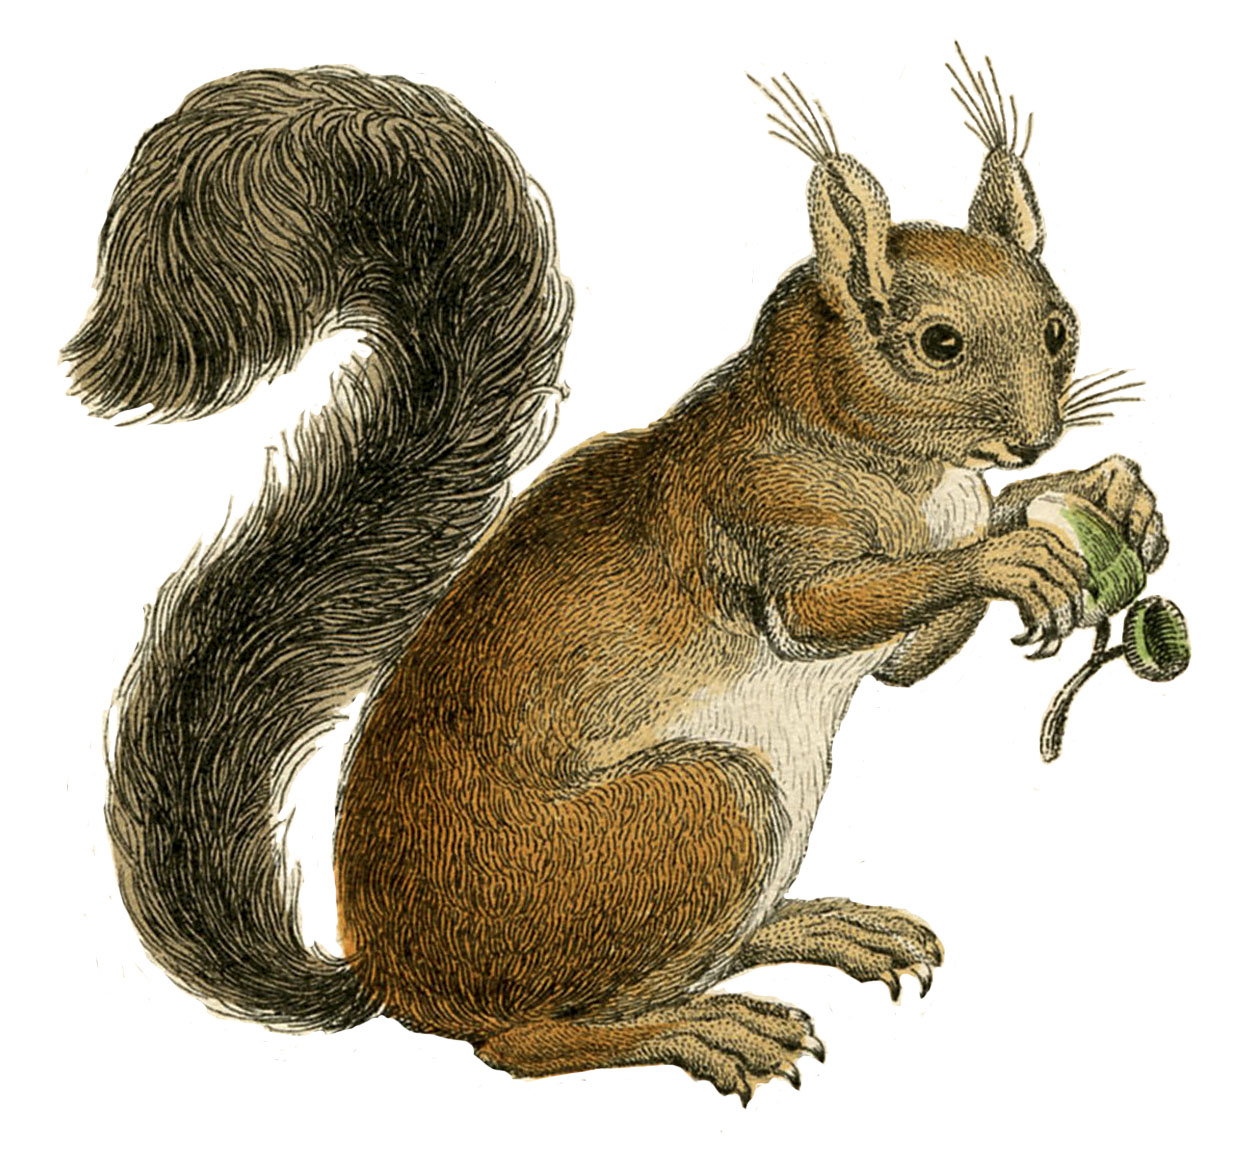 Squirrel clipart september. Natural history instant art